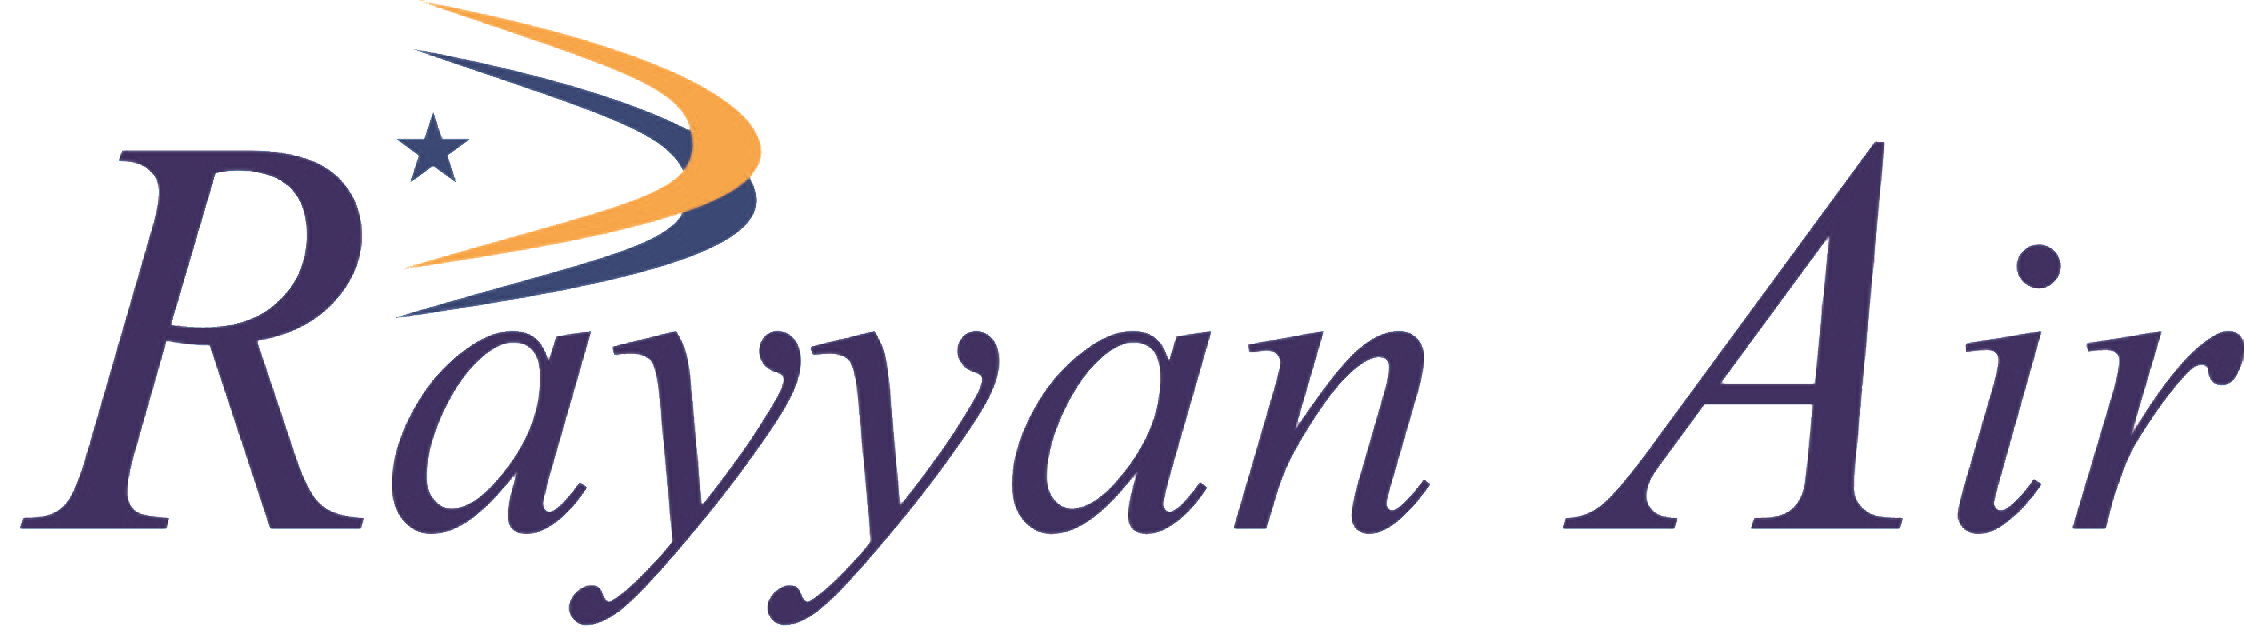 Rayyan Air logo